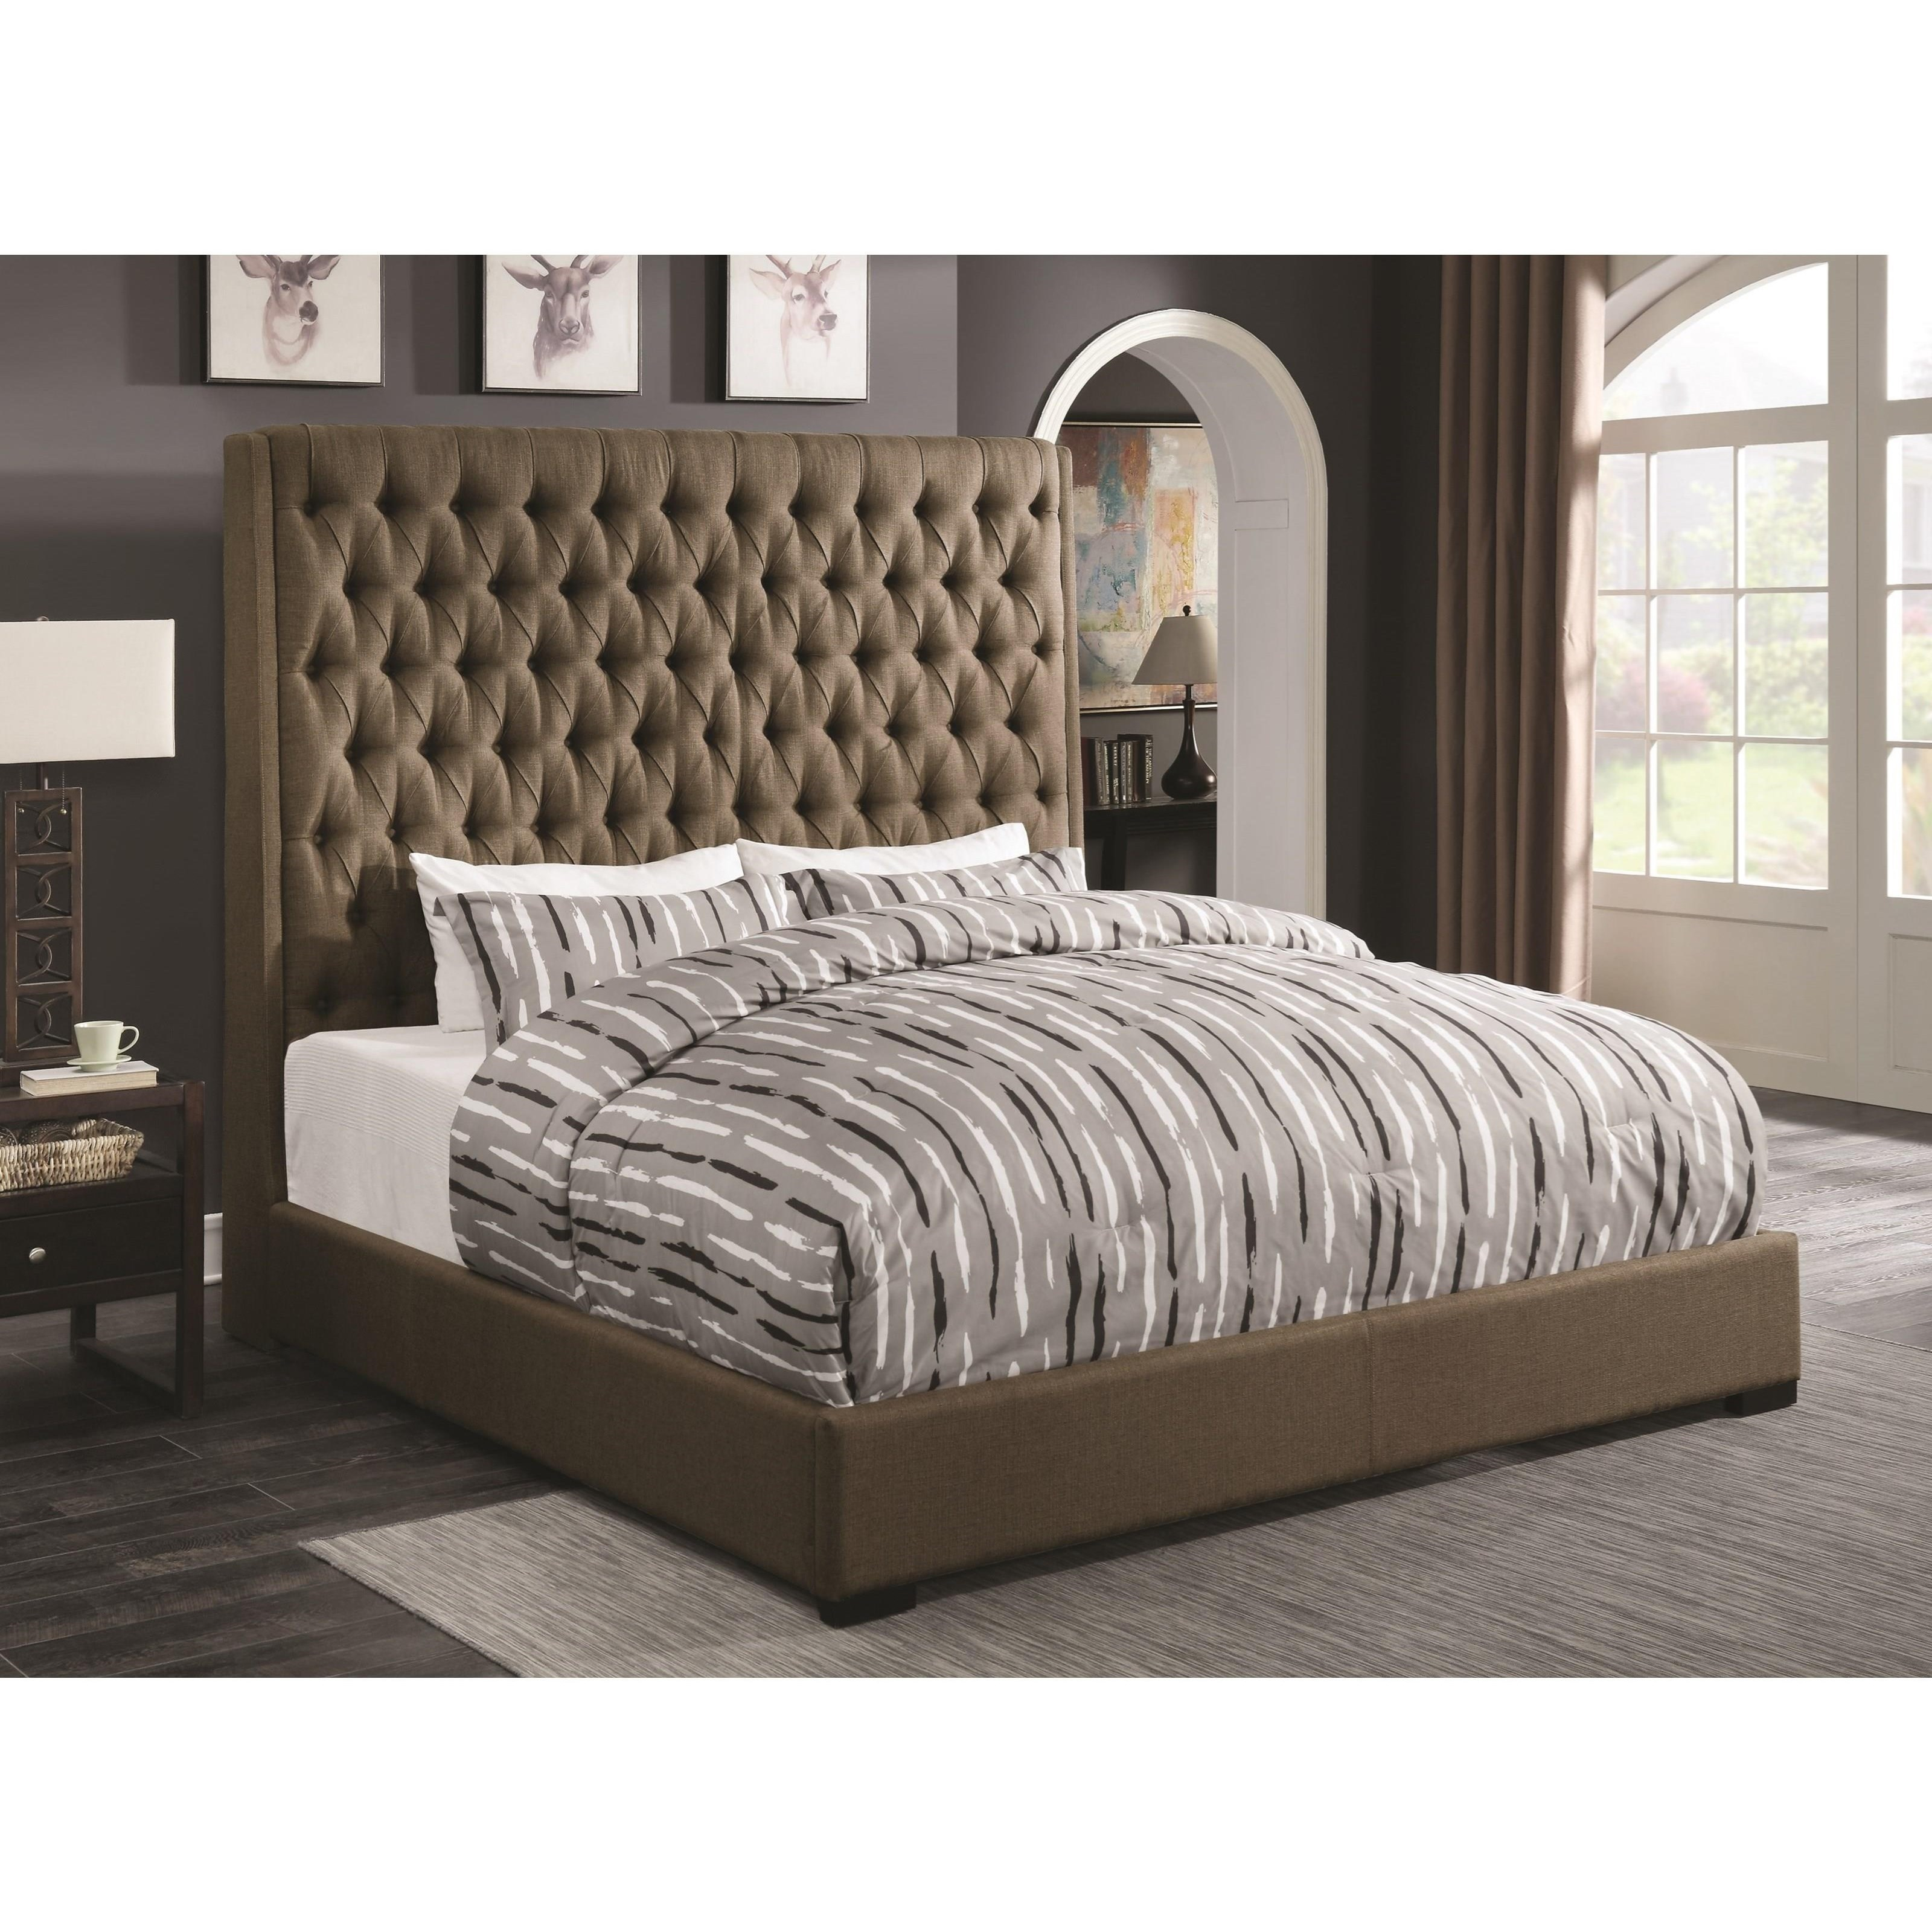 Coaster Upholstered Beds Queen Bed - Item Number: 300721Q